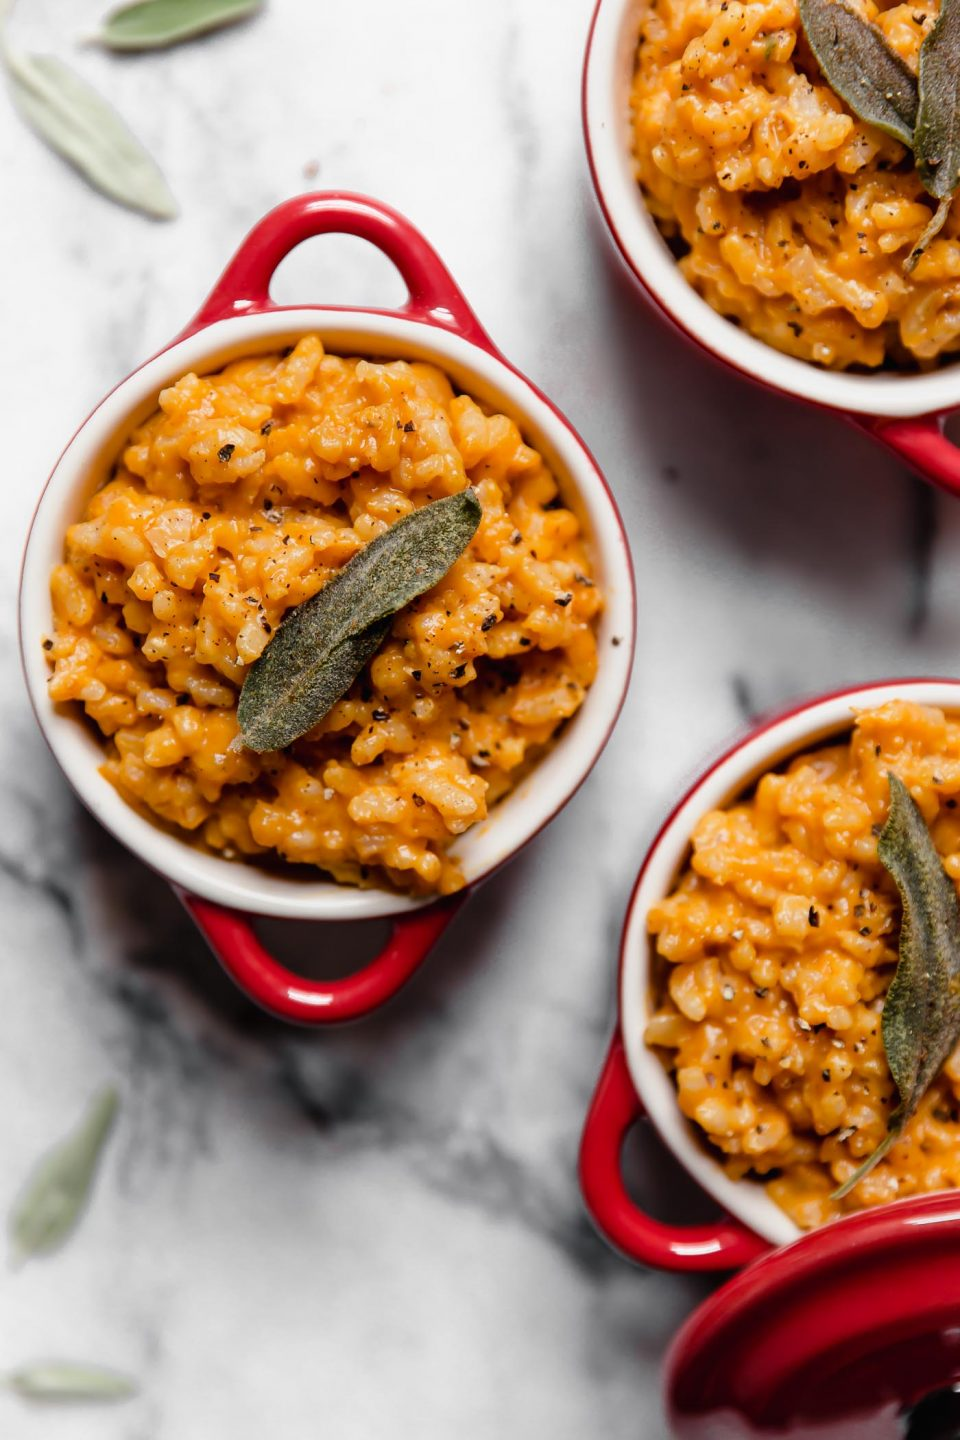 Individual portions of pumpkin risotto served in small red ramekins, topped with crispy fried sage.